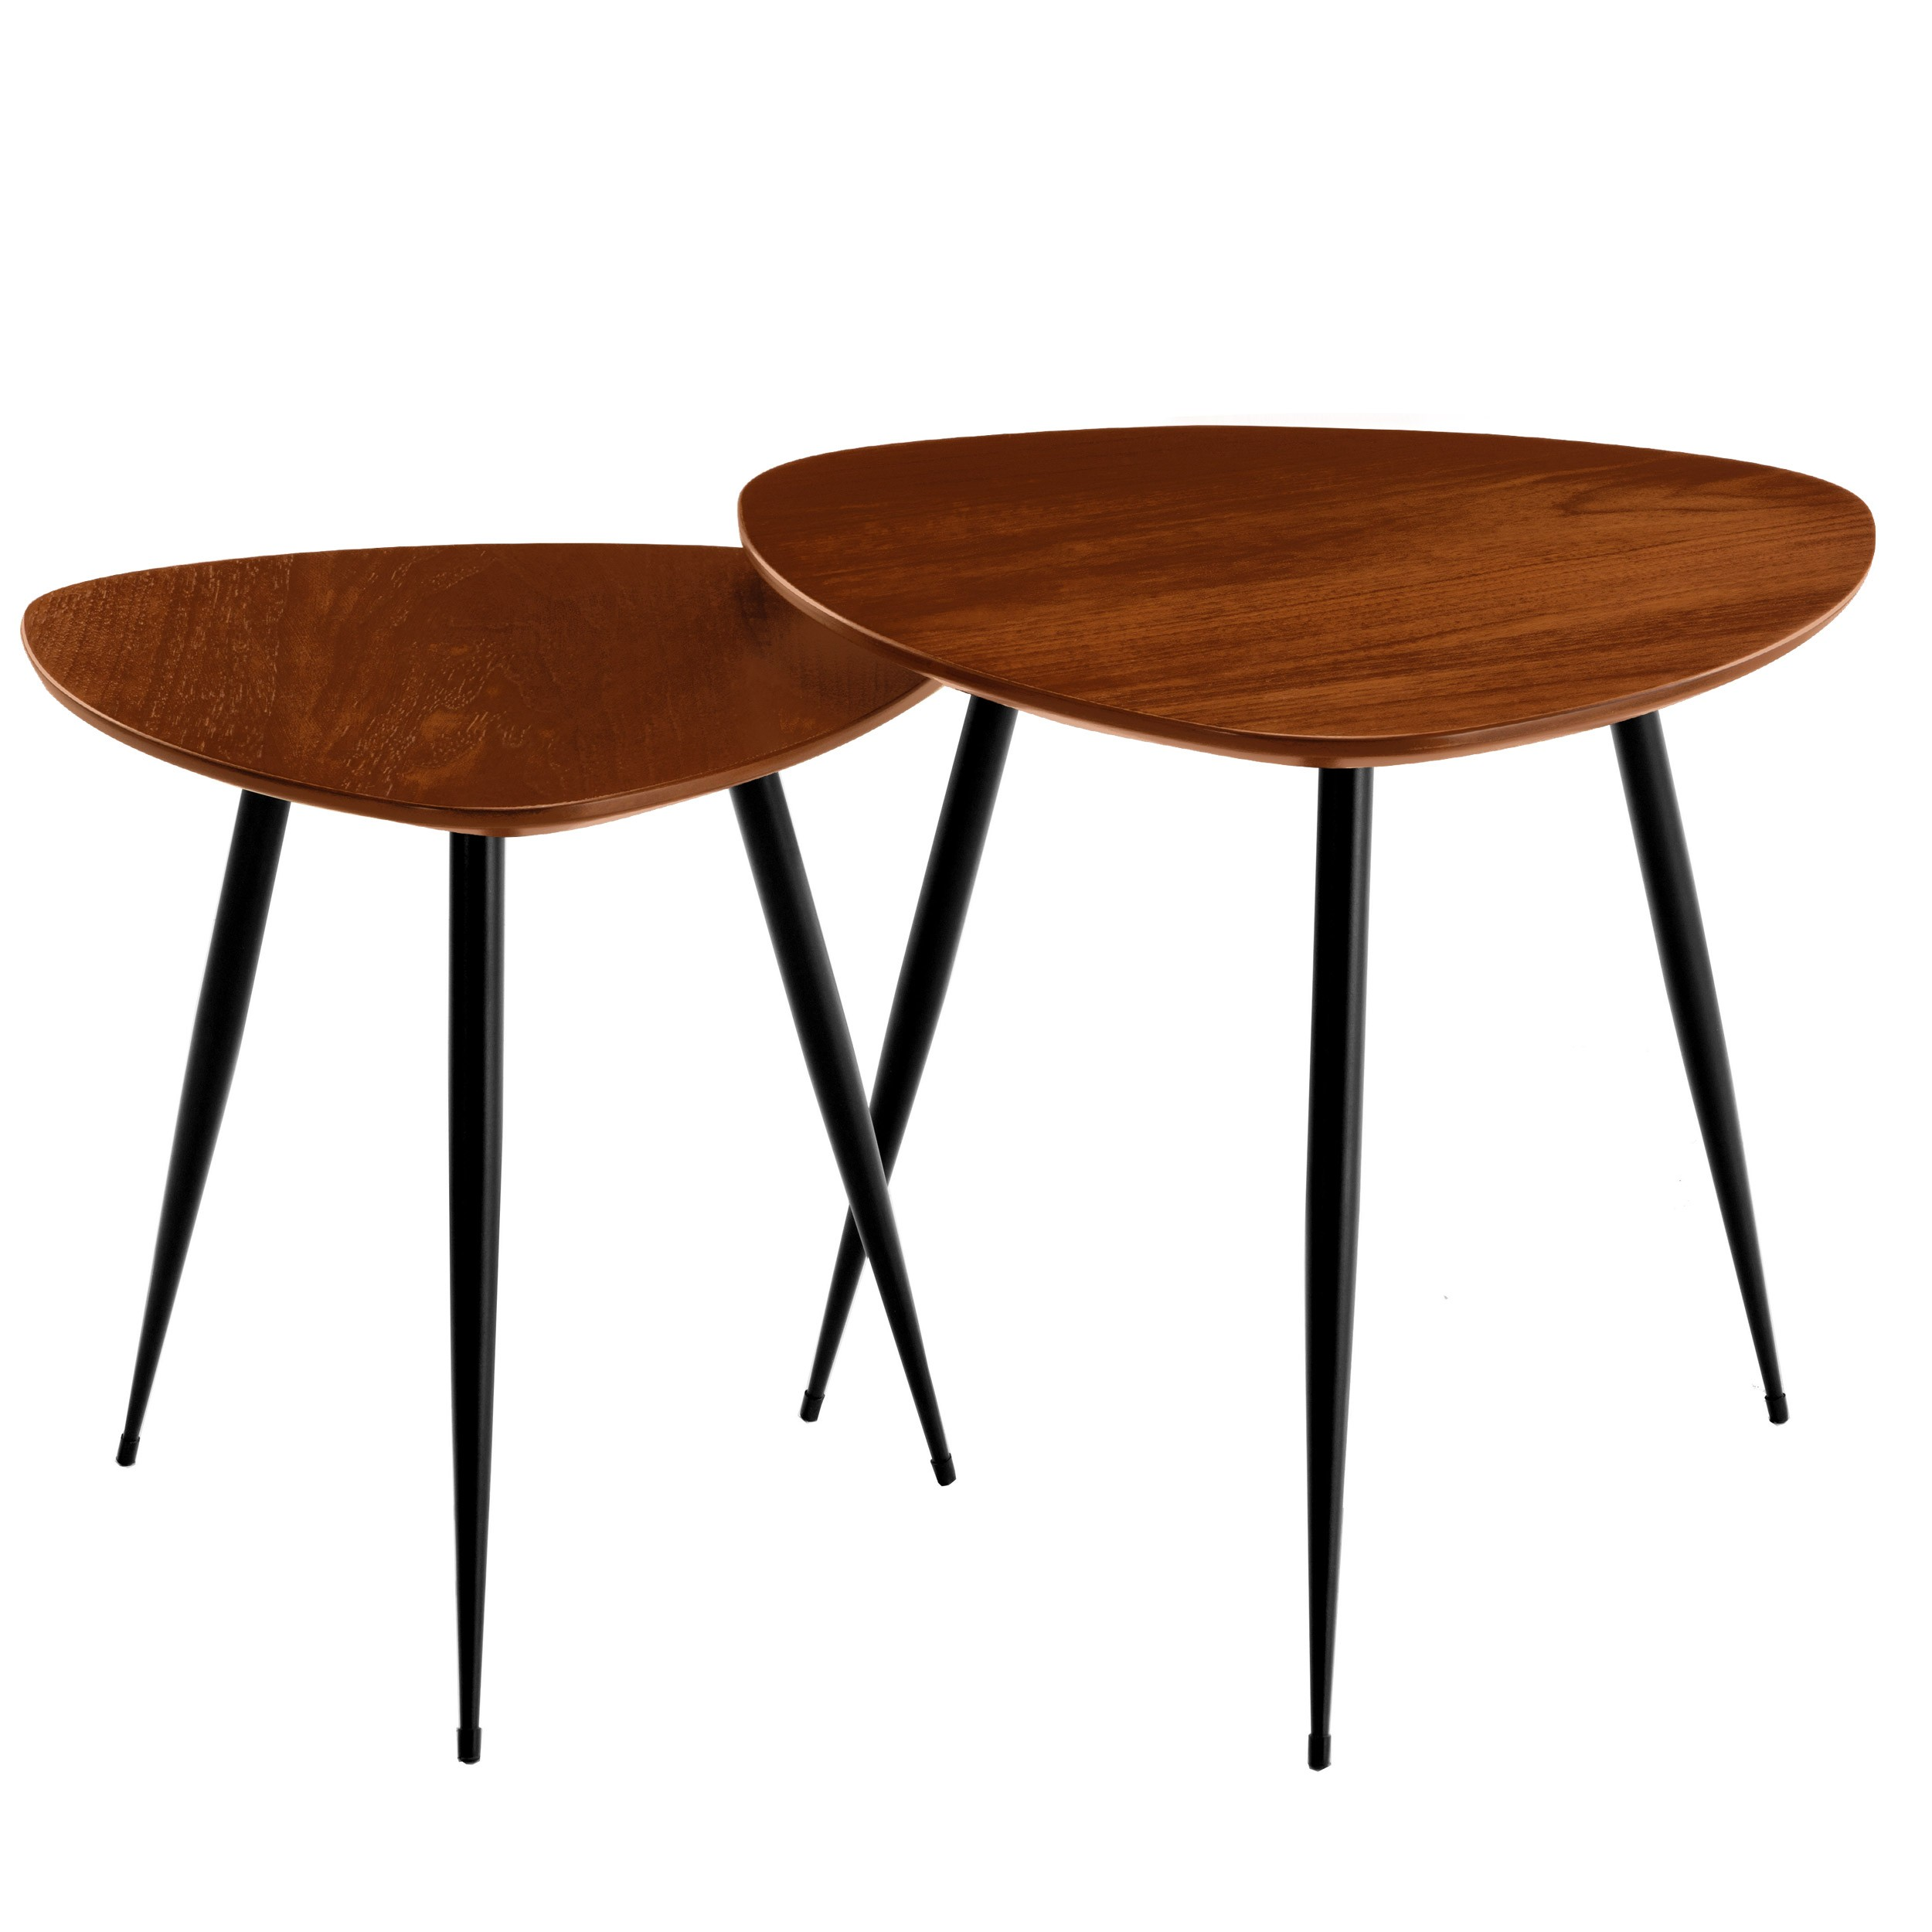 tables basses scandinaves en bois fonce quercus lot de 2. Black Bedroom Furniture Sets. Home Design Ideas